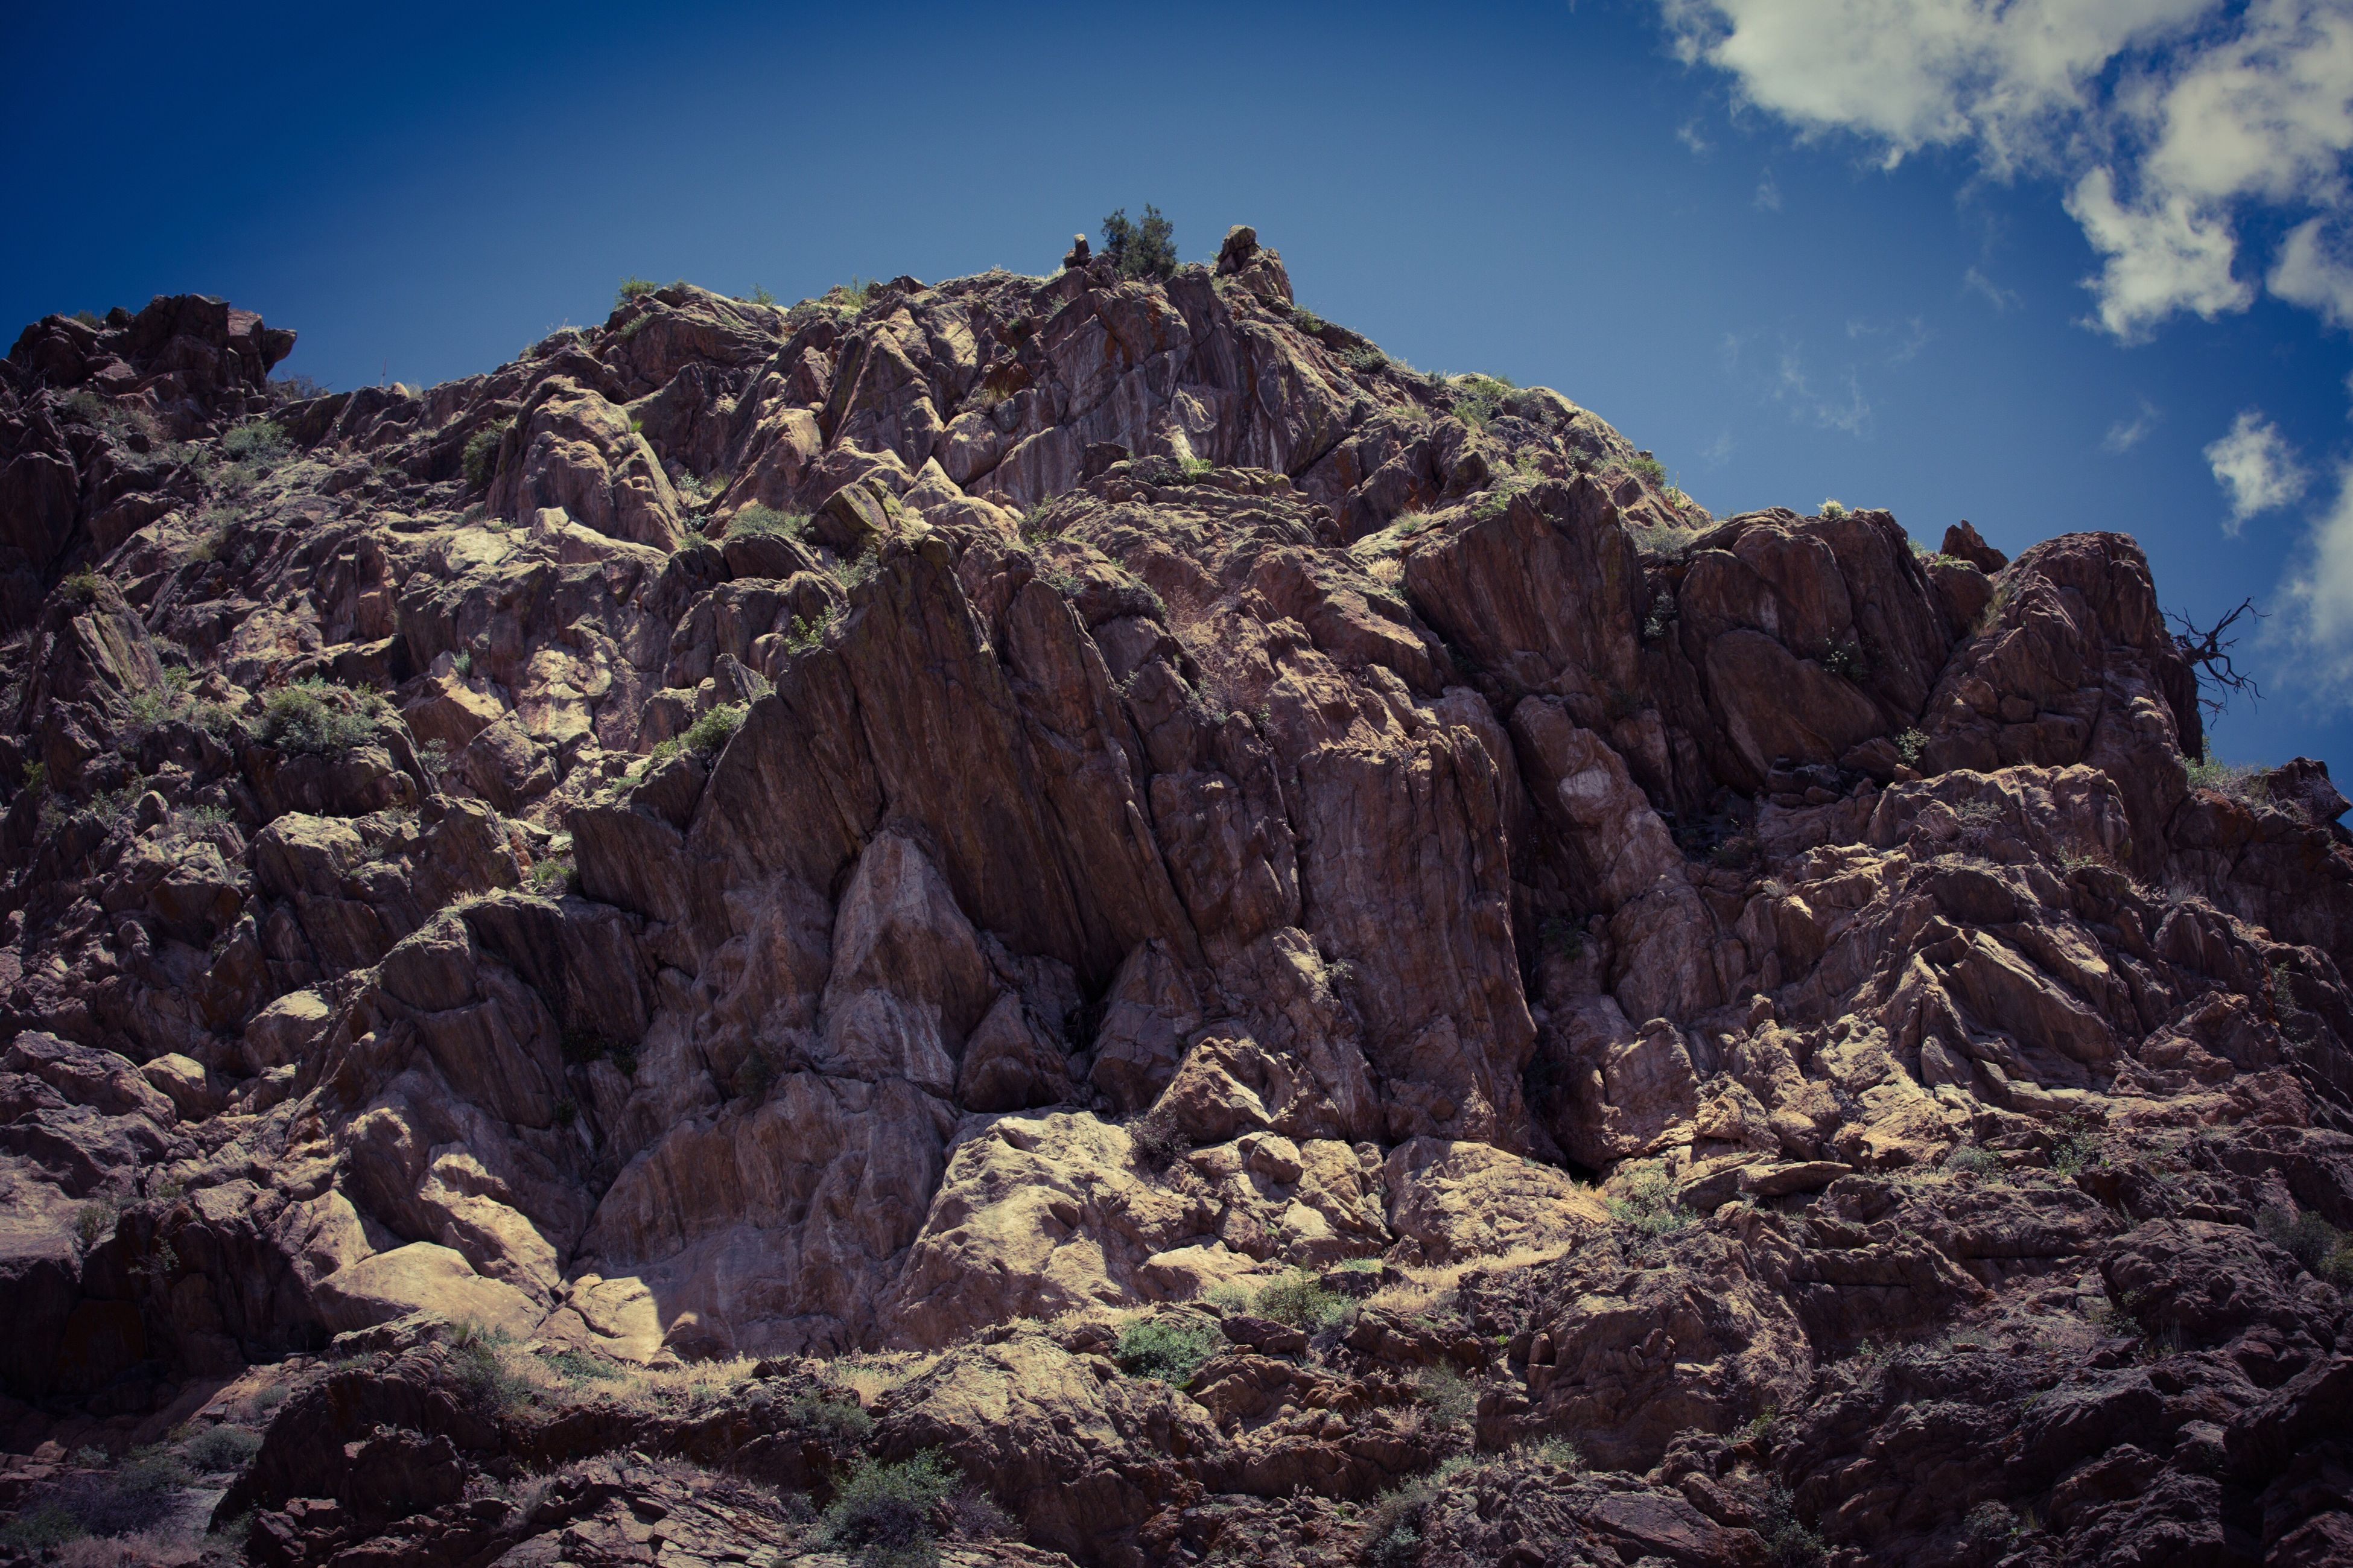 rock formation, mountain, tranquility, rock - object, tranquil scene, scenics, beauty in nature, rocky mountains, nature, low angle view, sky, geology, physical geography, rock, blue, non-urban scene, eroded, landscape, tree, rough